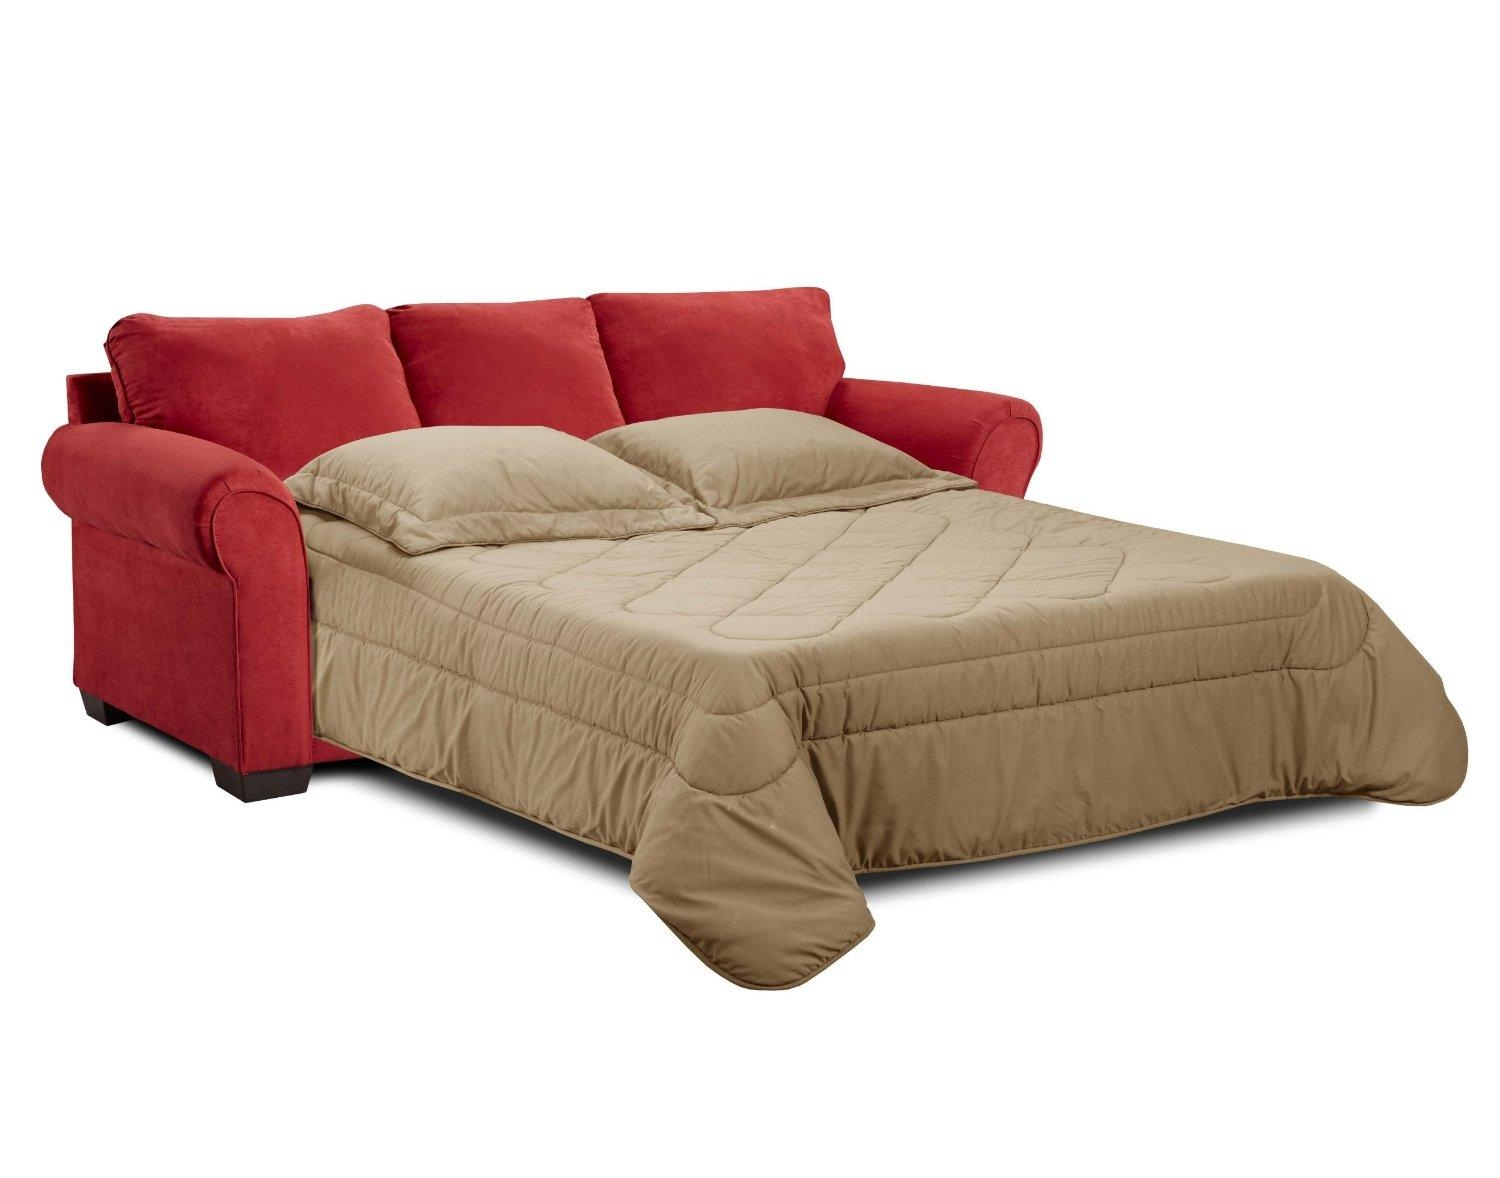 20 best collection of sofa beds sheets sofa ideas for Sears sleeper sofa bed